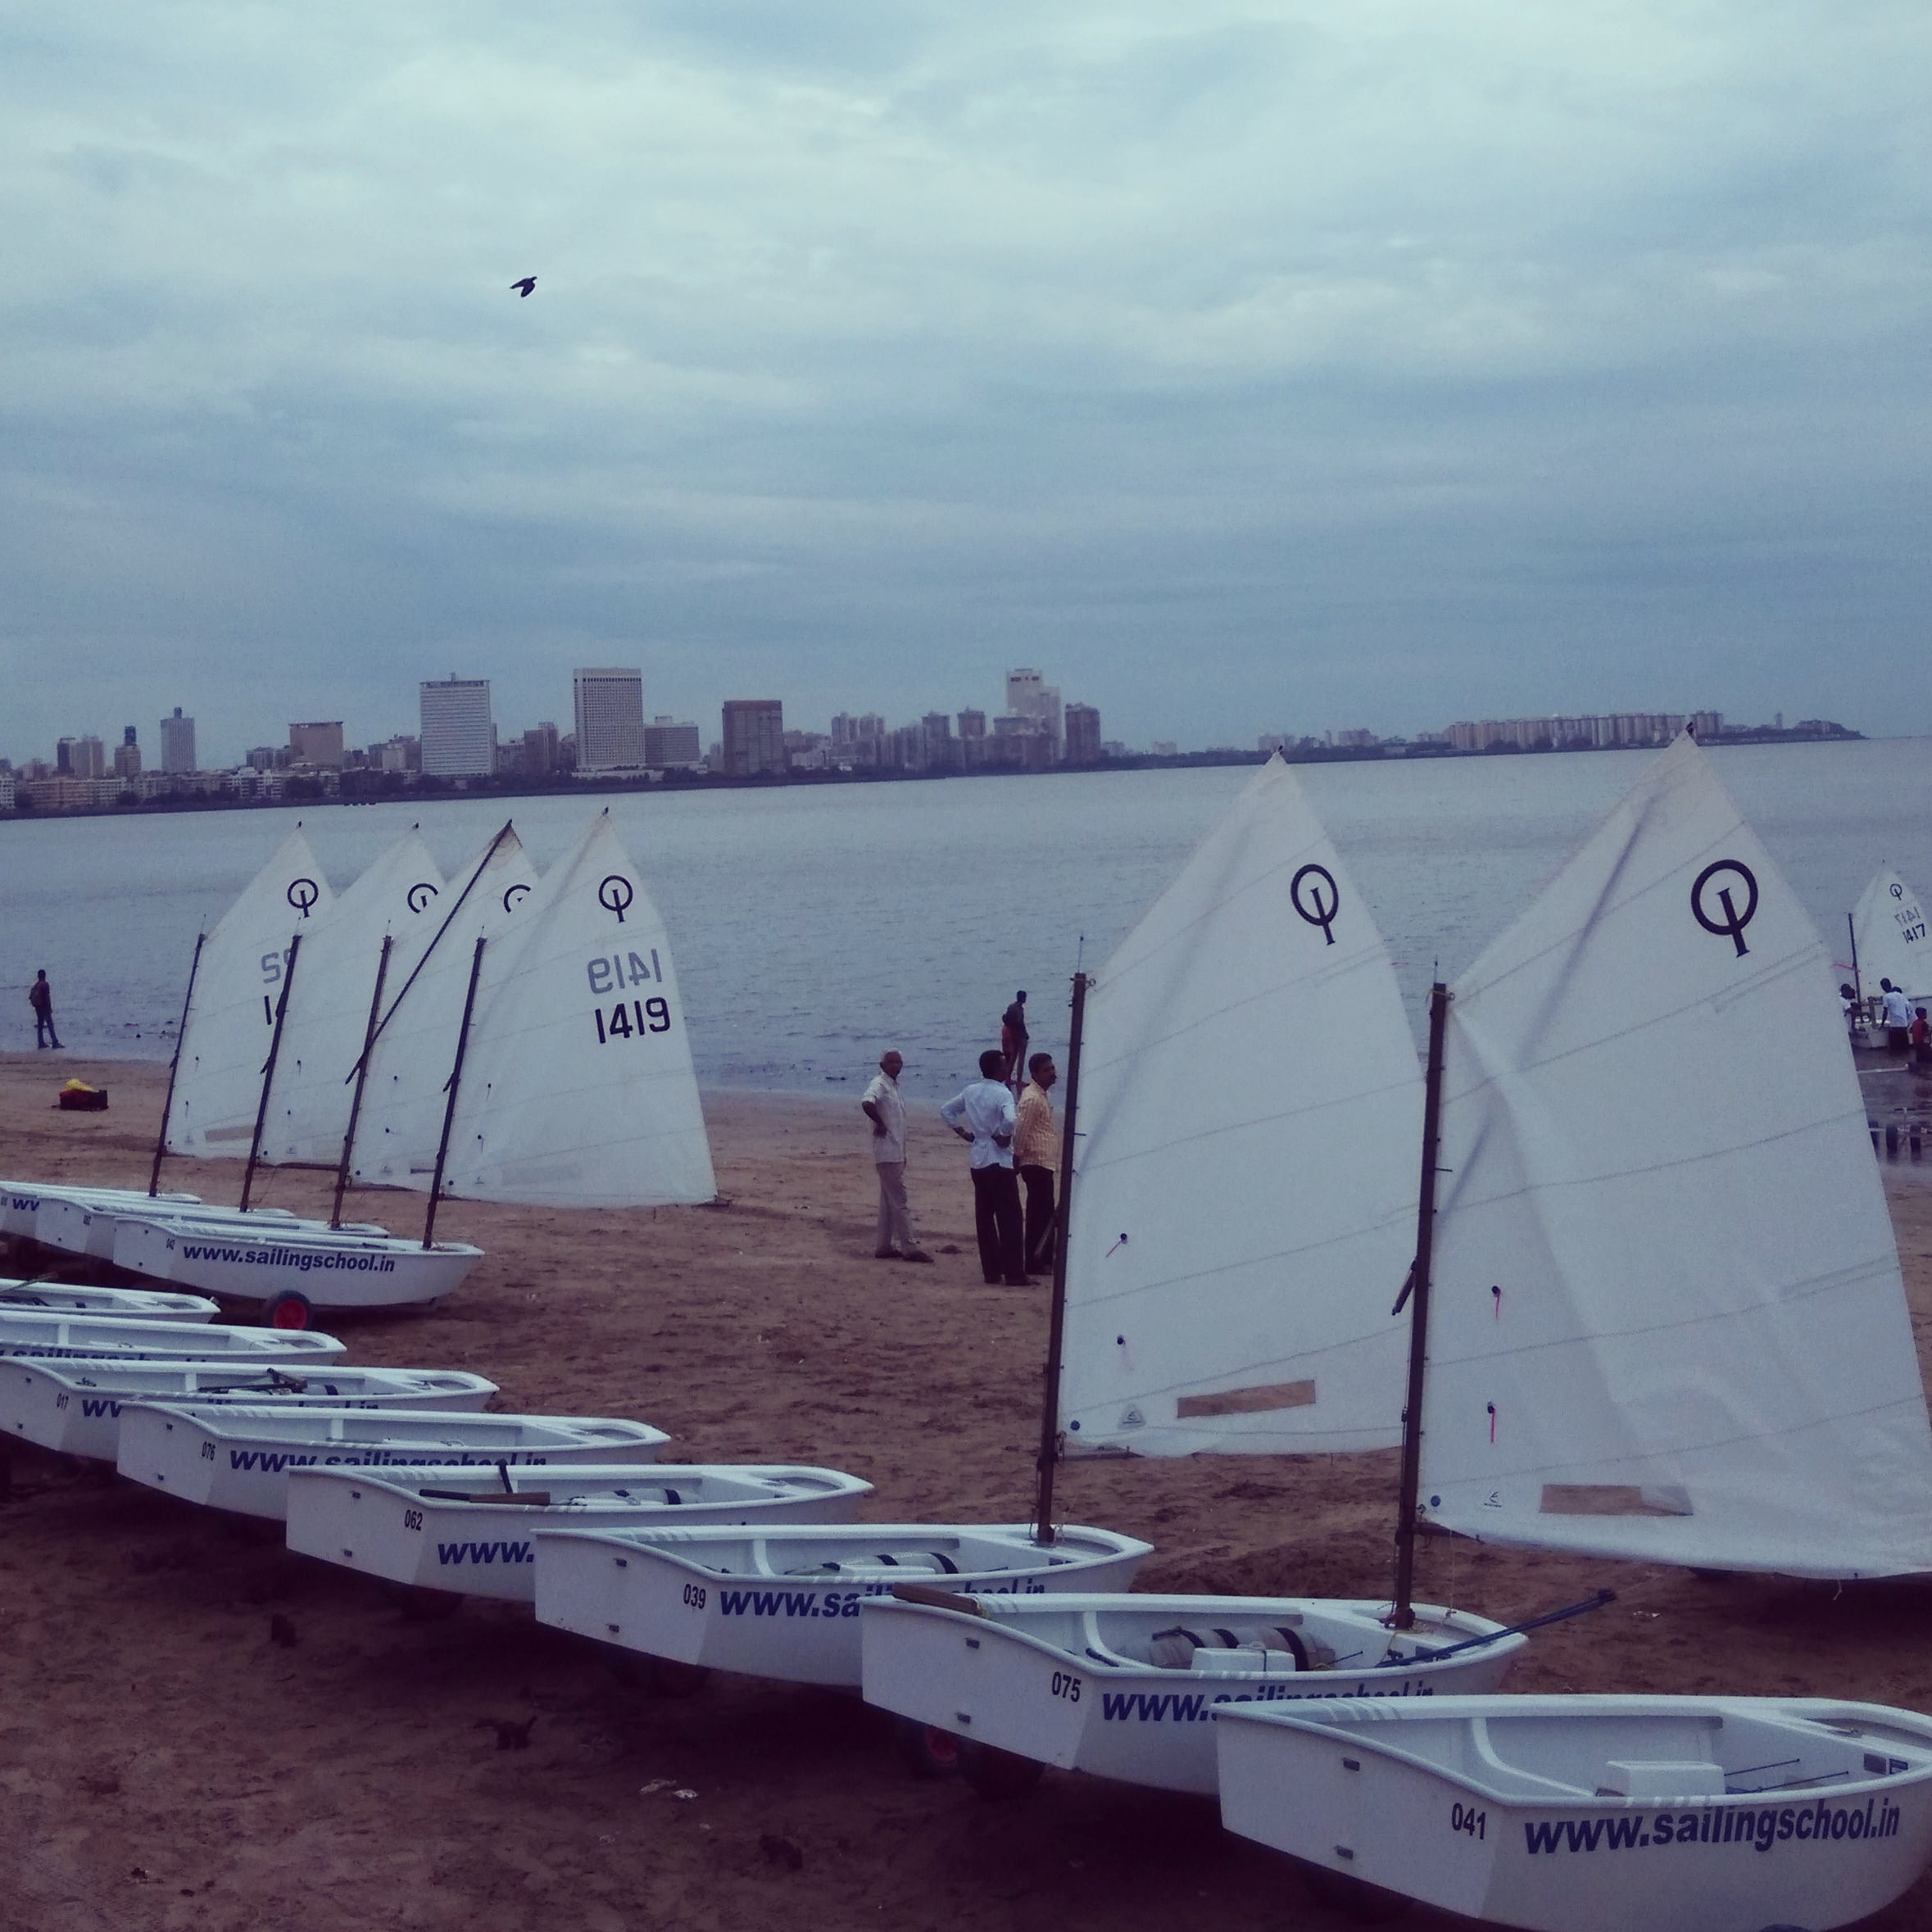 Optimist Sail boats at Marine Drive